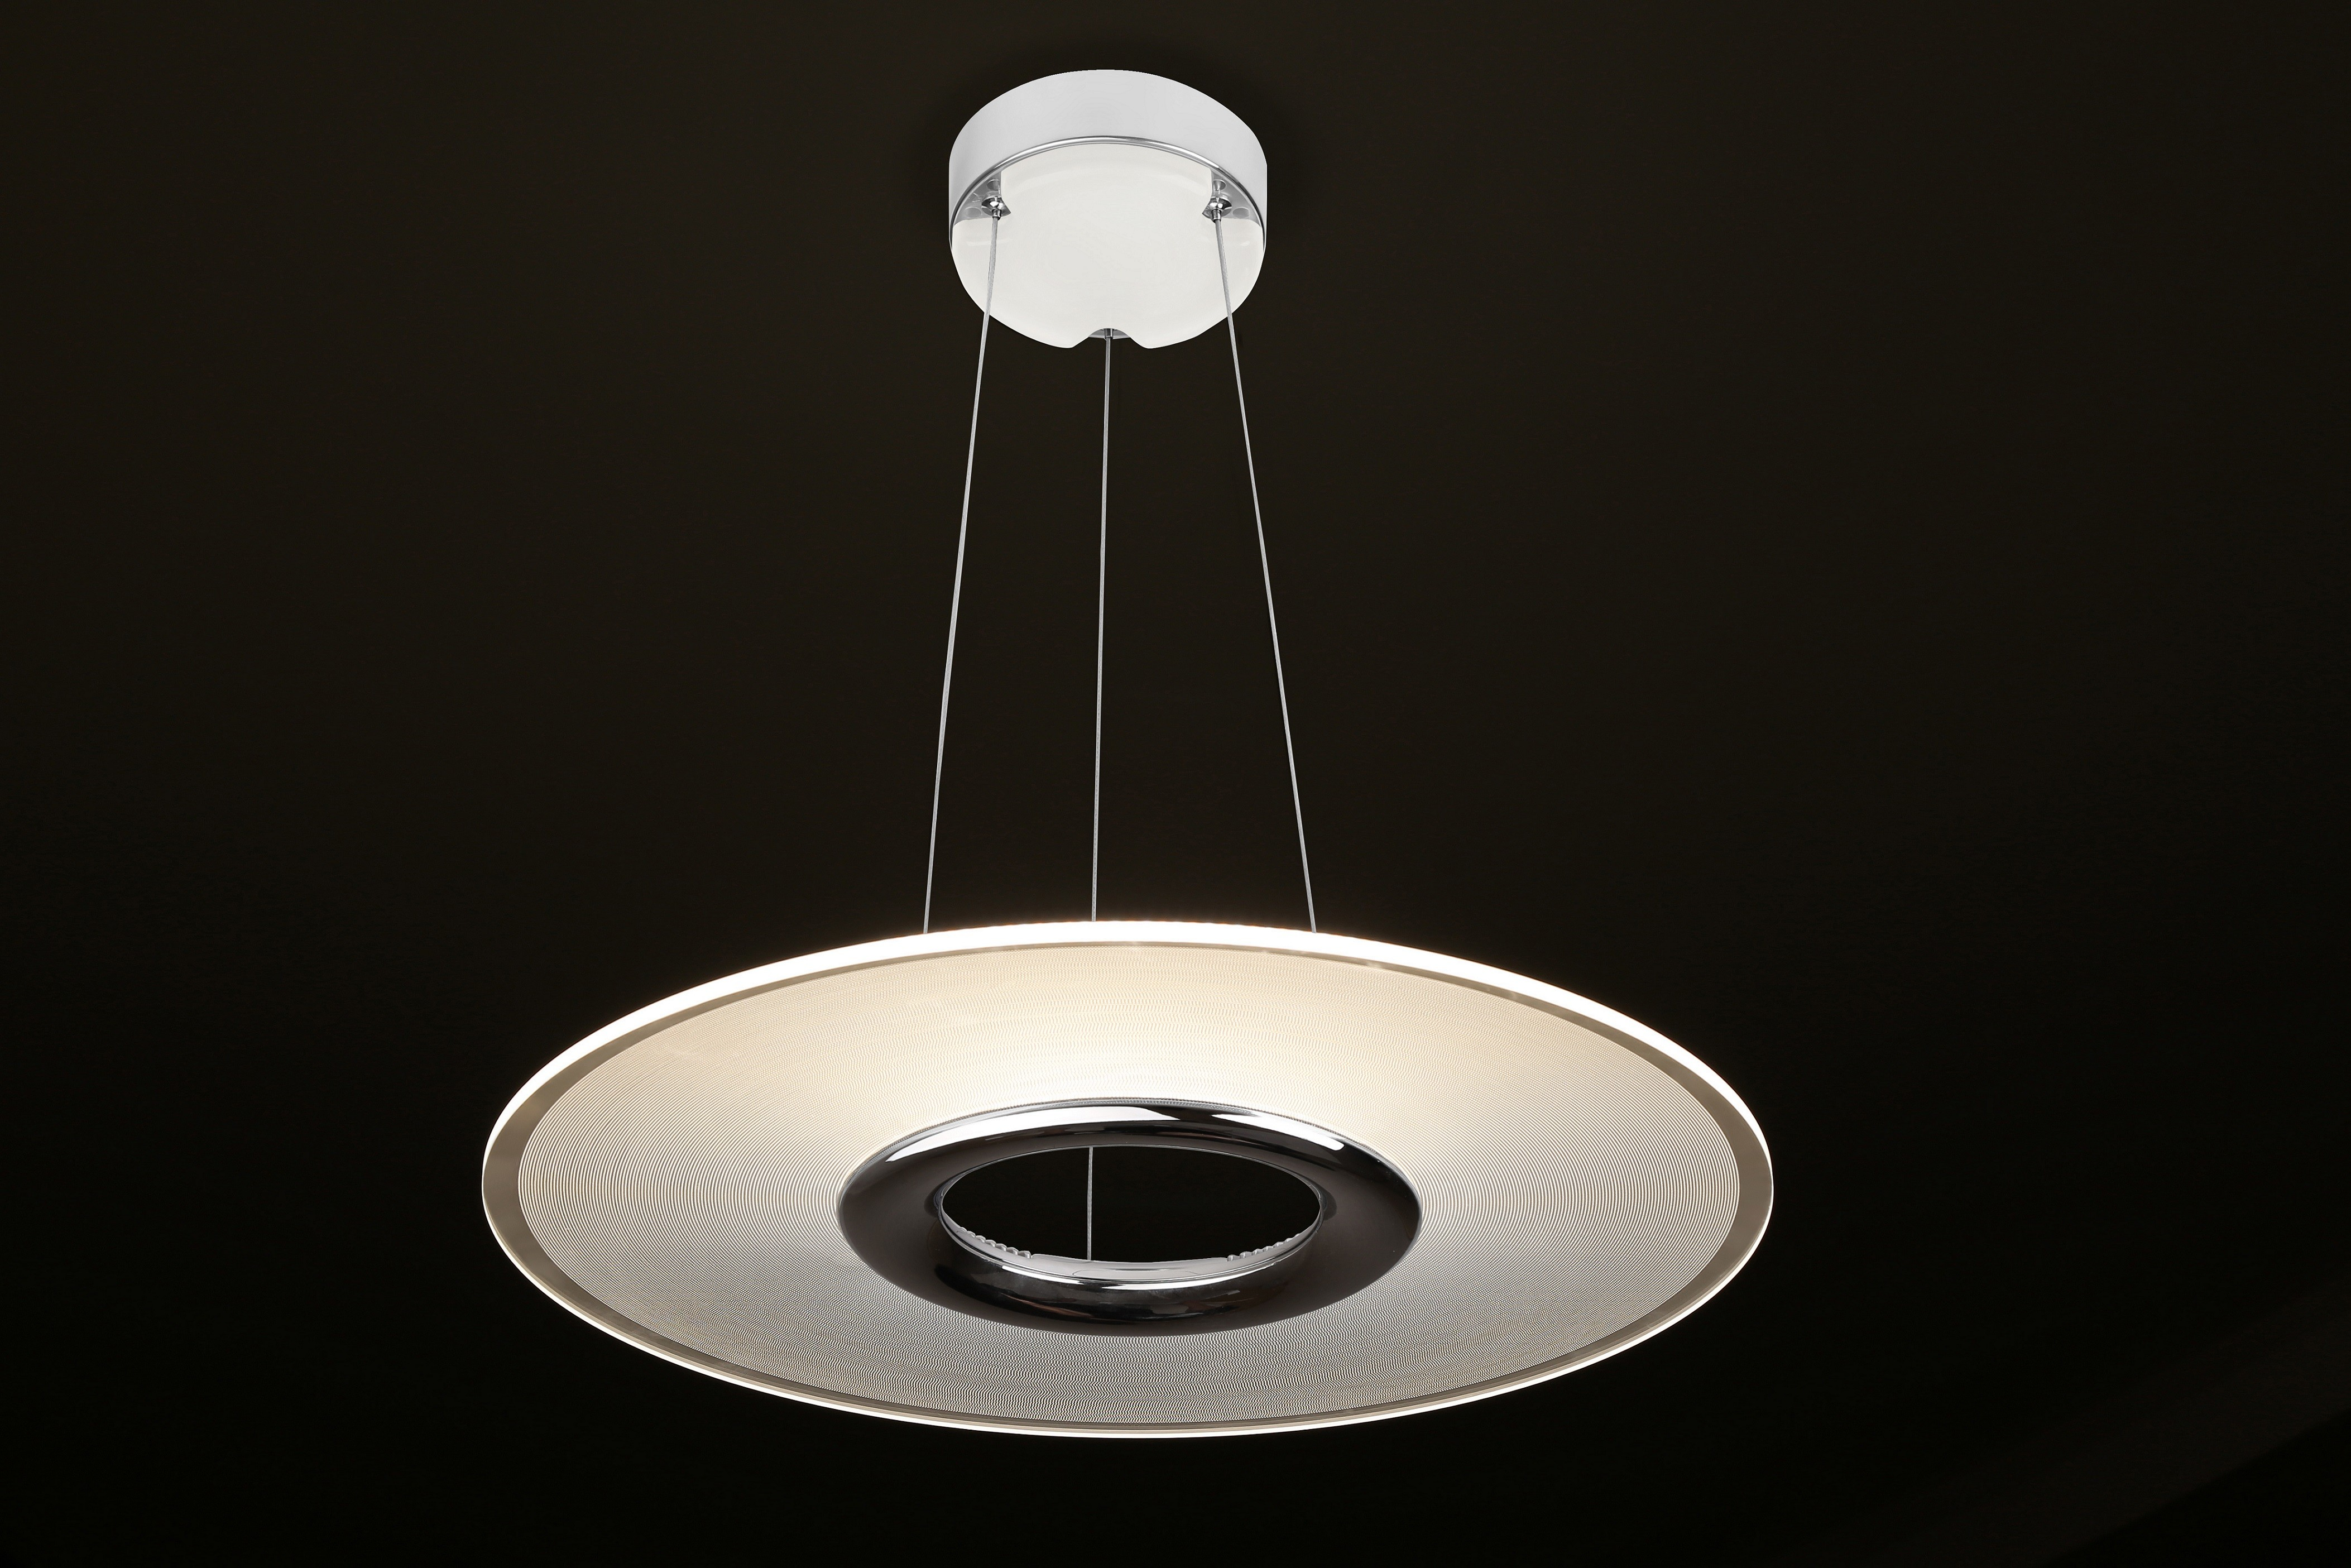 28W Eye Protection LED Pendant Lamp , Remote Control Round Hanging Ceiling Light